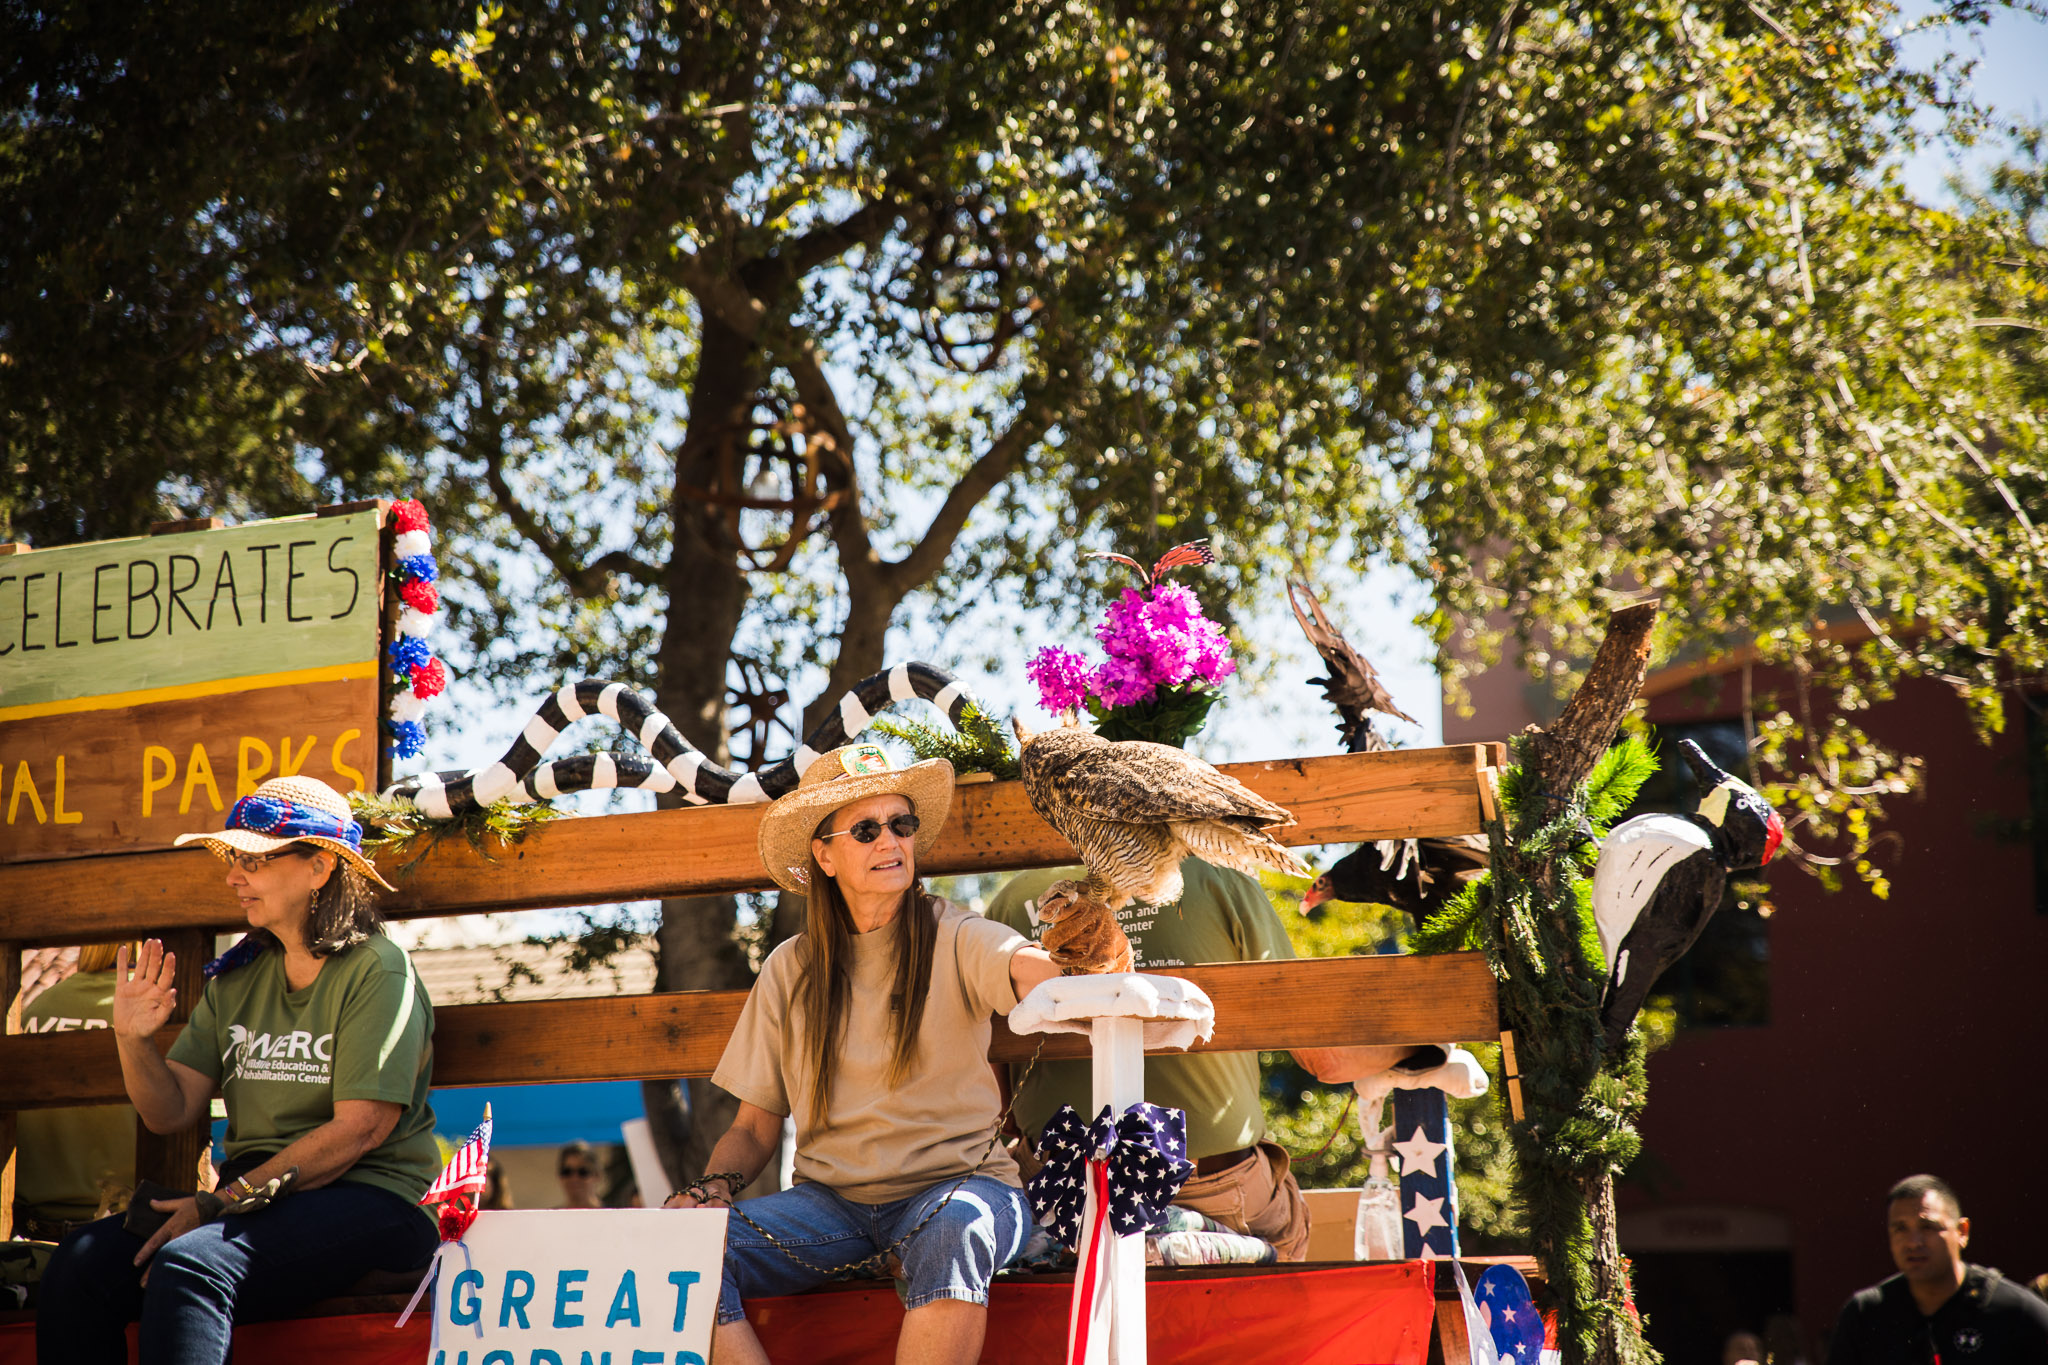 Archer_Inspired_Photography_Morgan_Hill_California_4th_of_july_parade-69.jpg